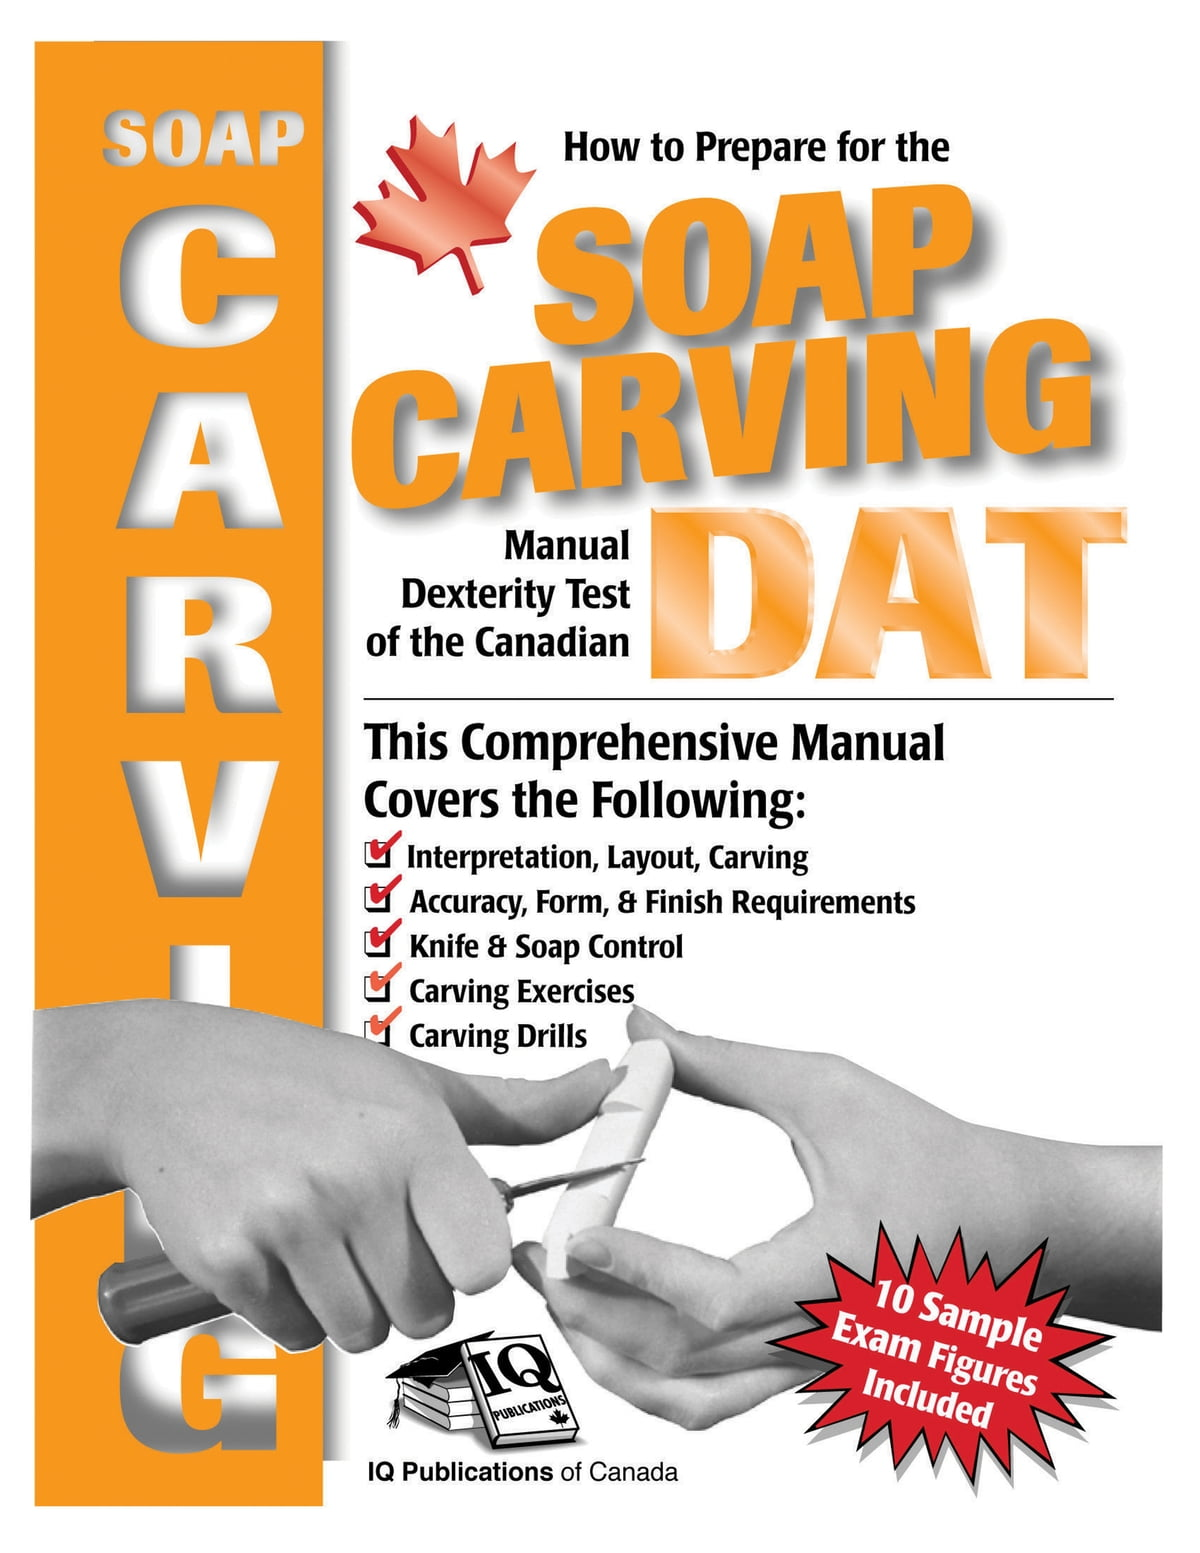 How to Prepare for the Soap Carving Manual Dexterity Test of the Canadian DAT eBook by Liv Reschke - 9781896784519 | Rakuten Kobo